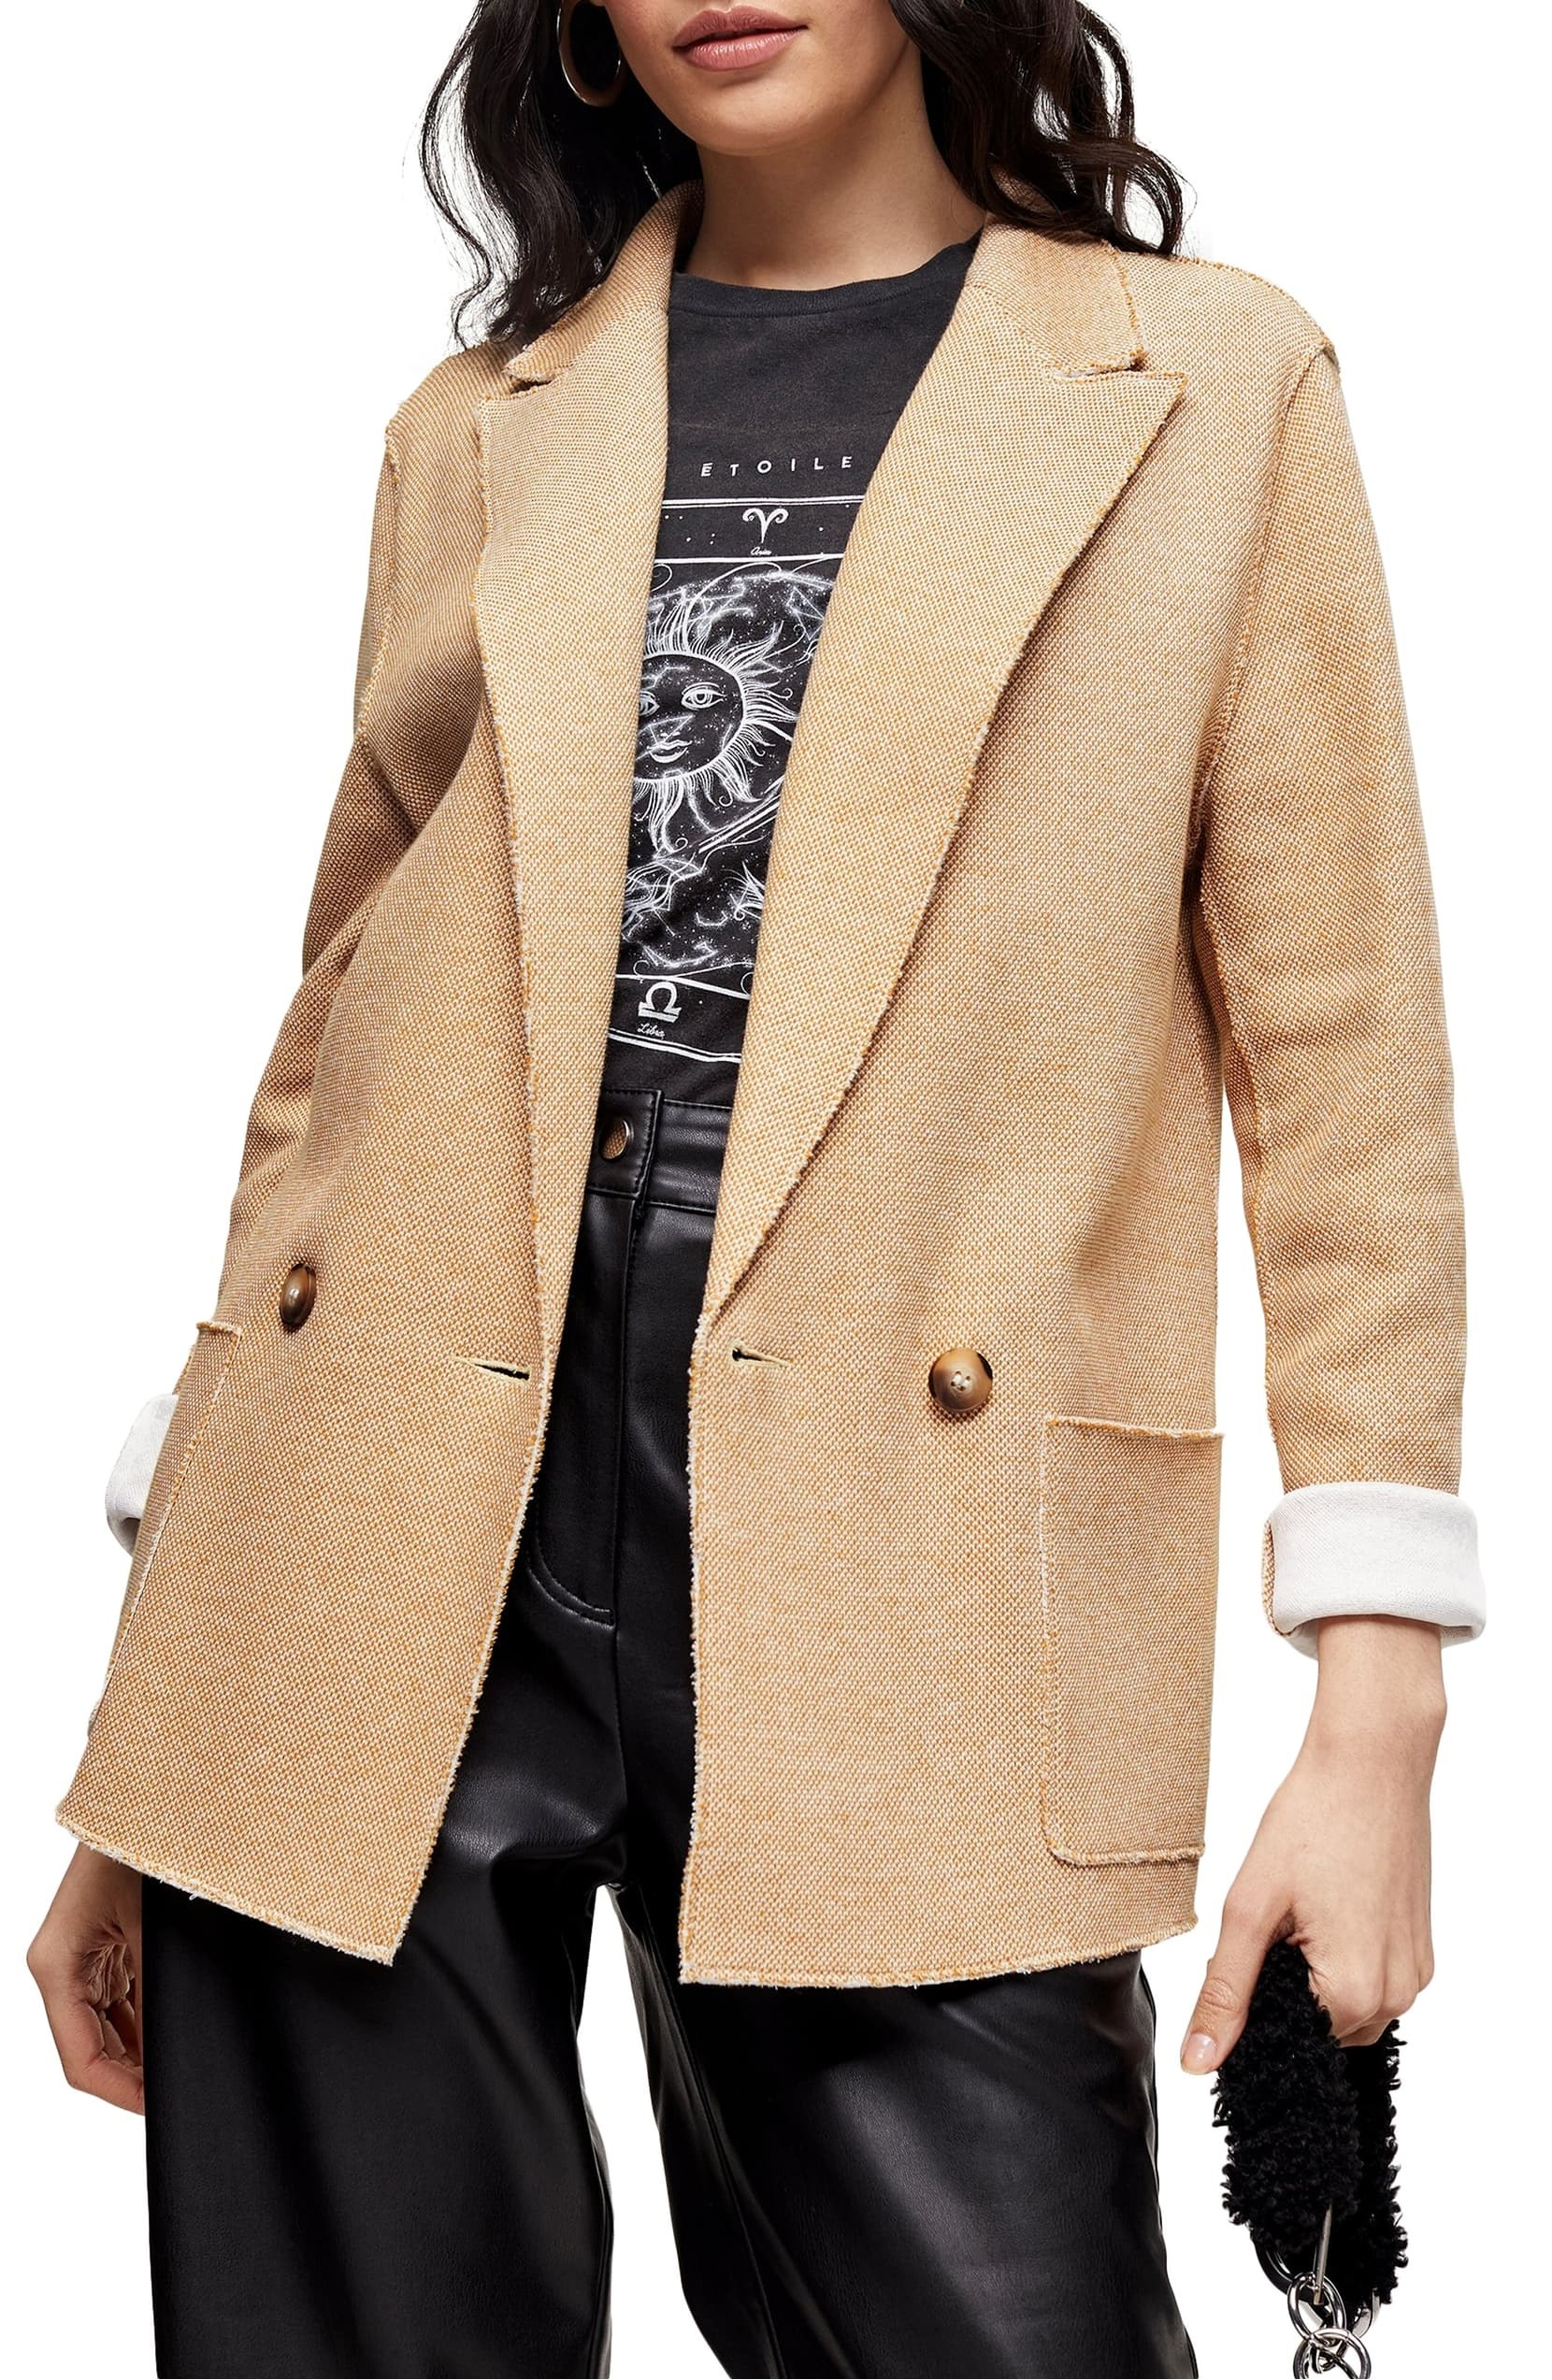 Model in the oversized blazer in tan with two buttons and pockets